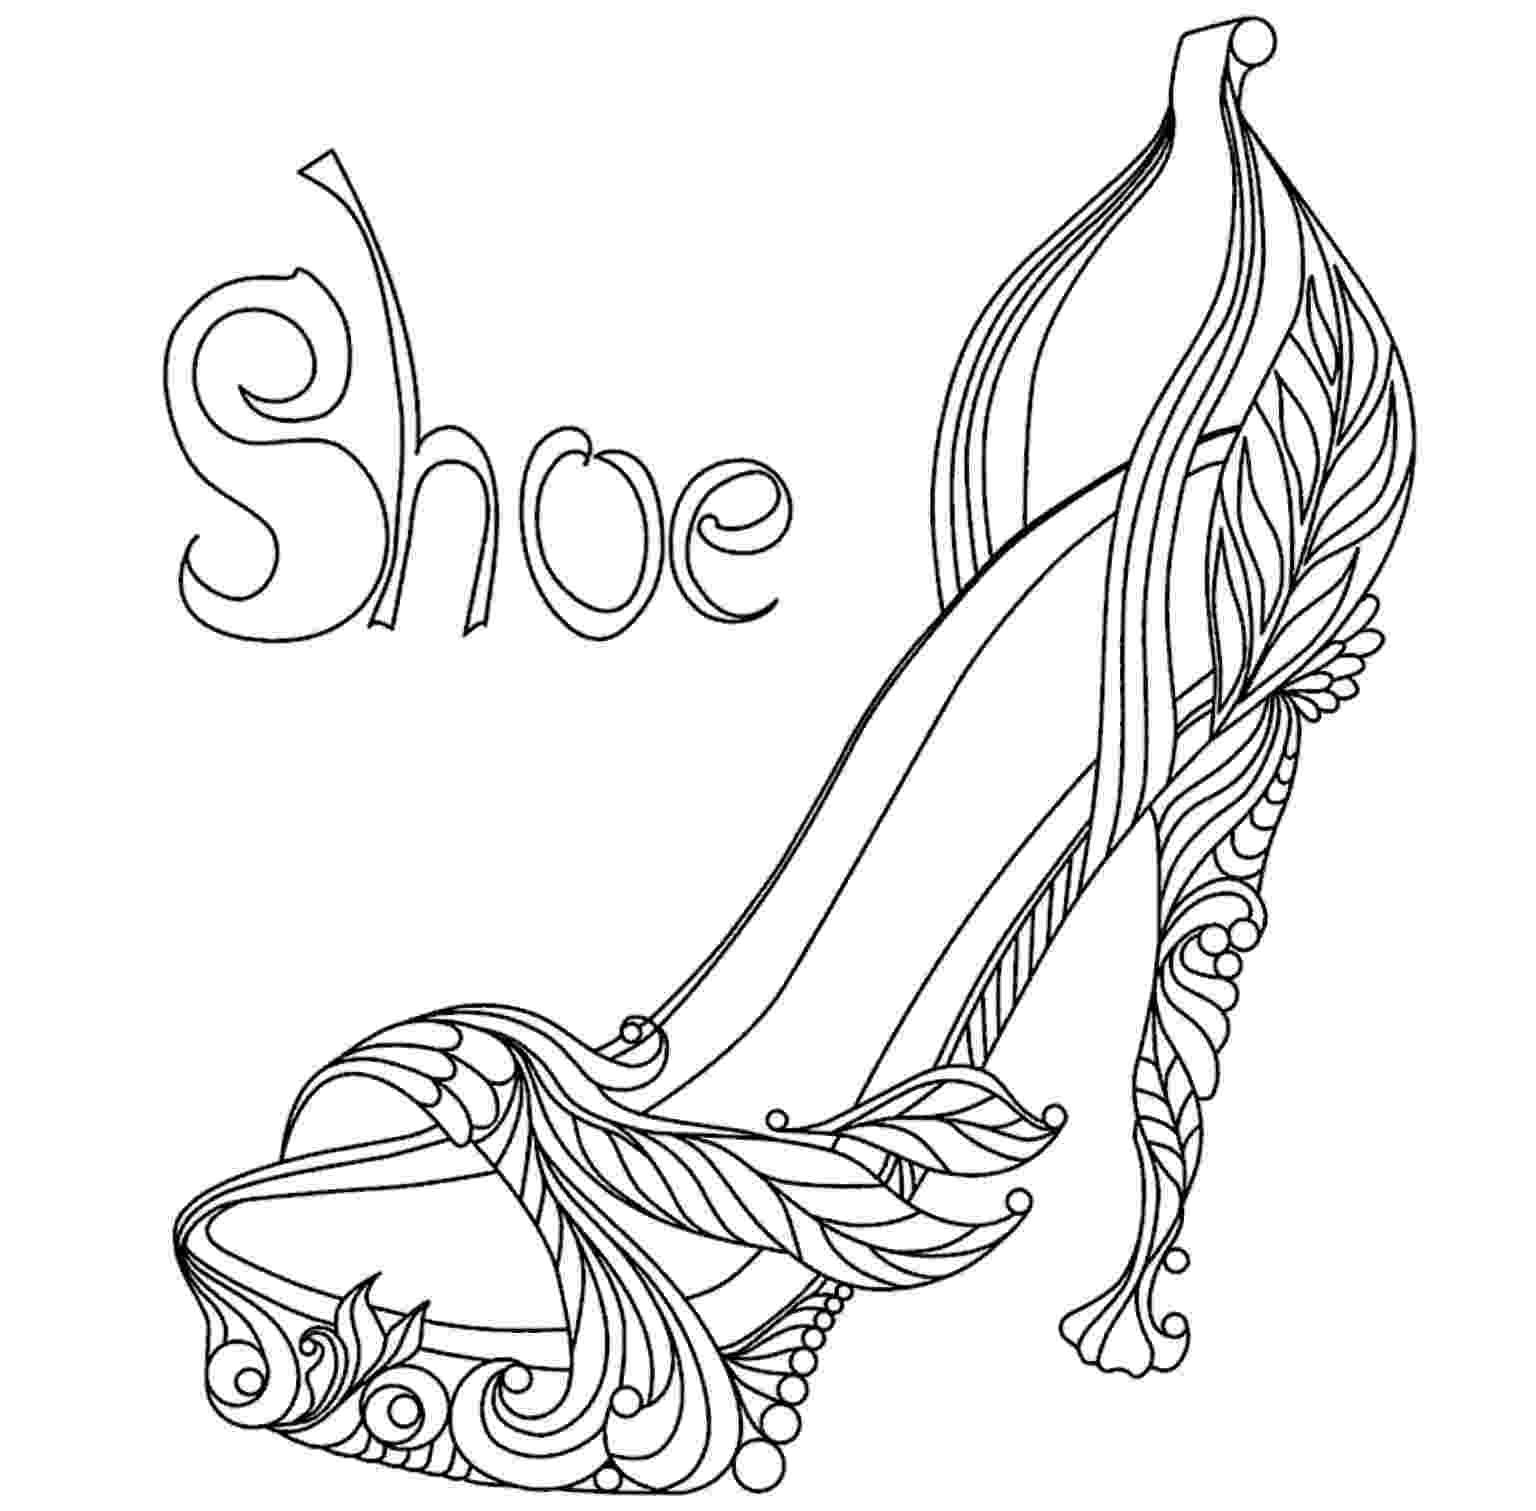 coloring pages shoes jordan shoes coloring pages free download on clipartmag pages coloring shoes